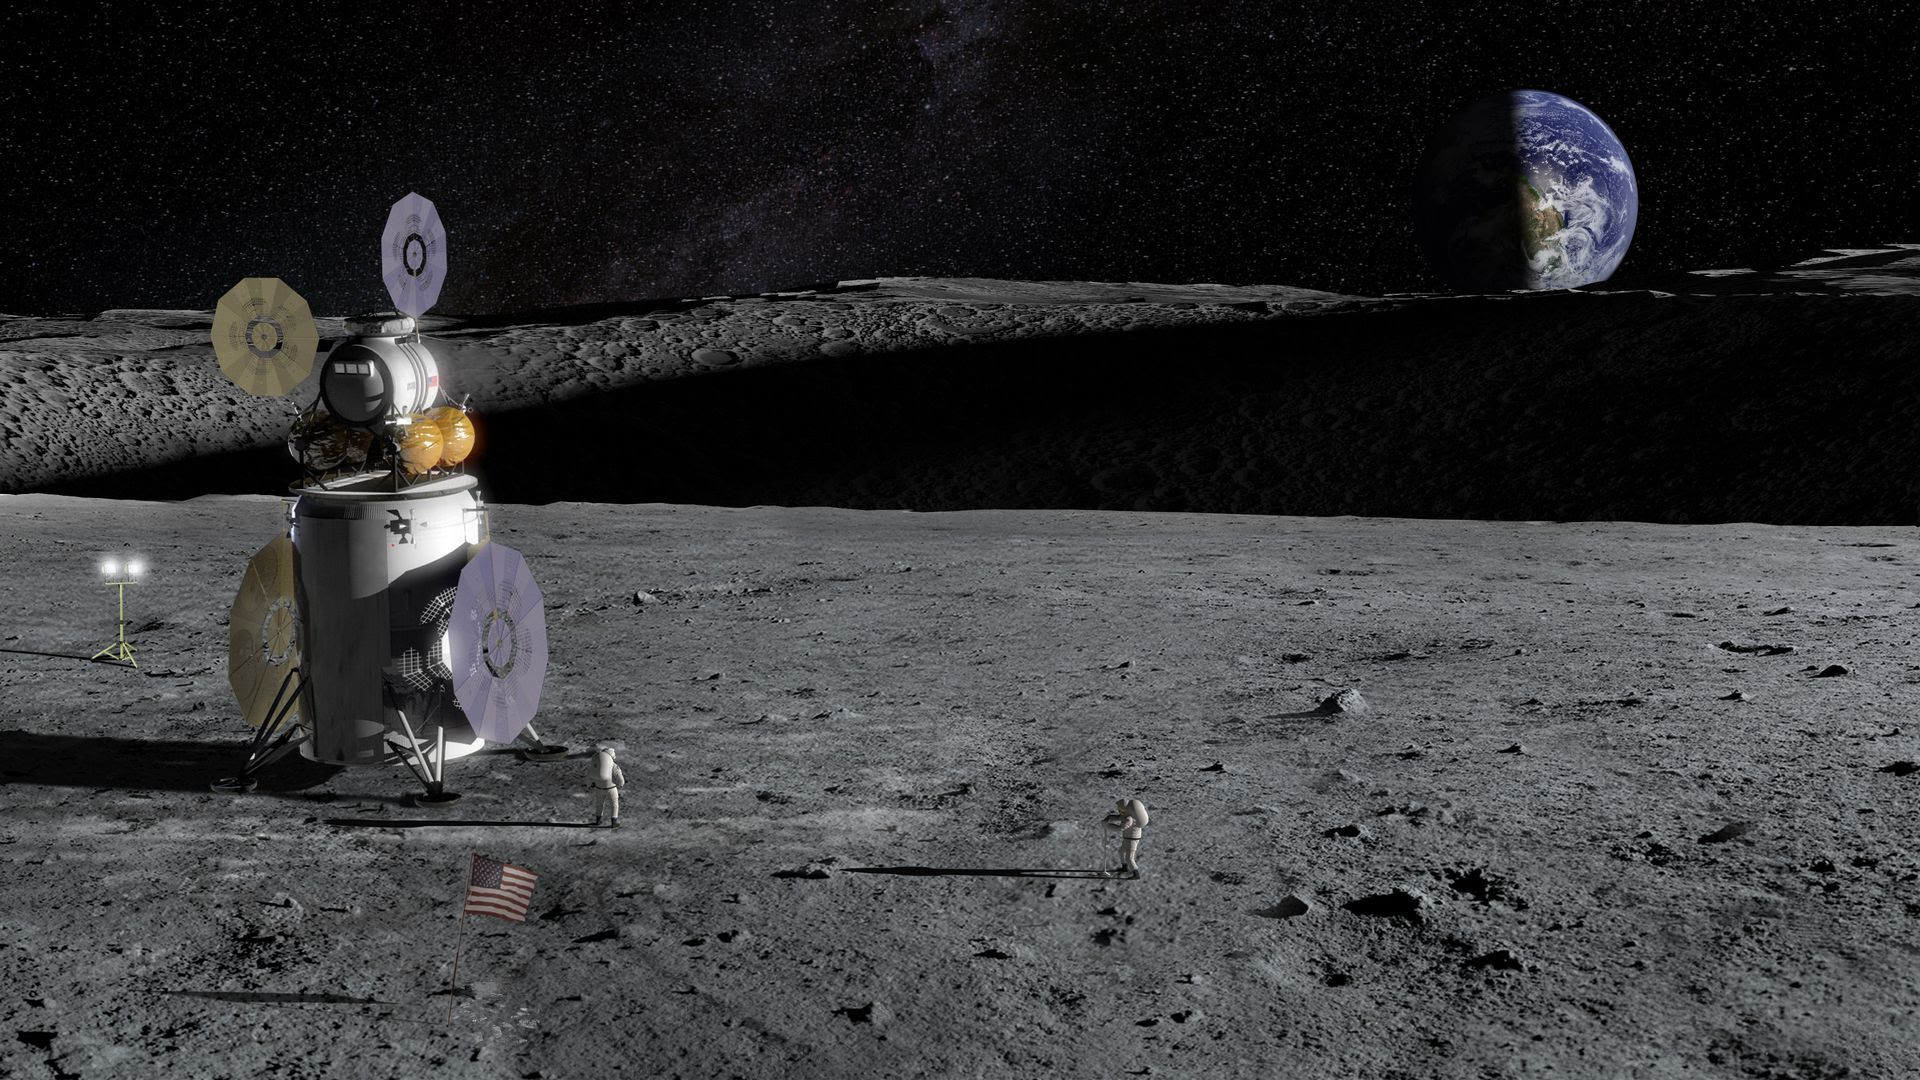 Illustration of a lander and astronauts on the moon. Photo: NASA